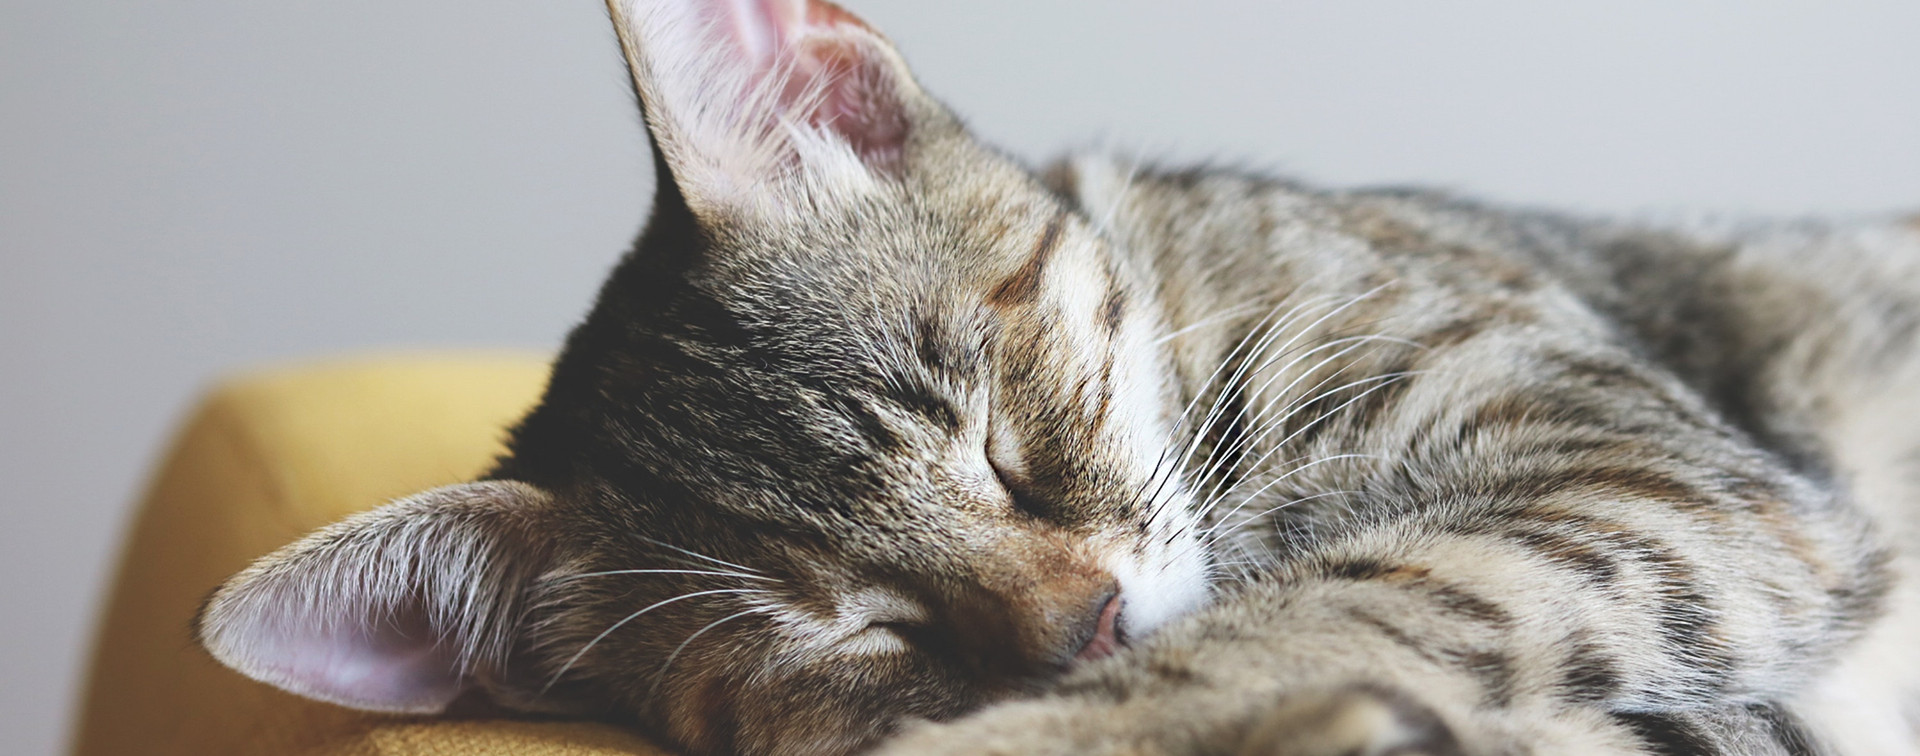 close-up-photography-of-gray-tabby-cat-s